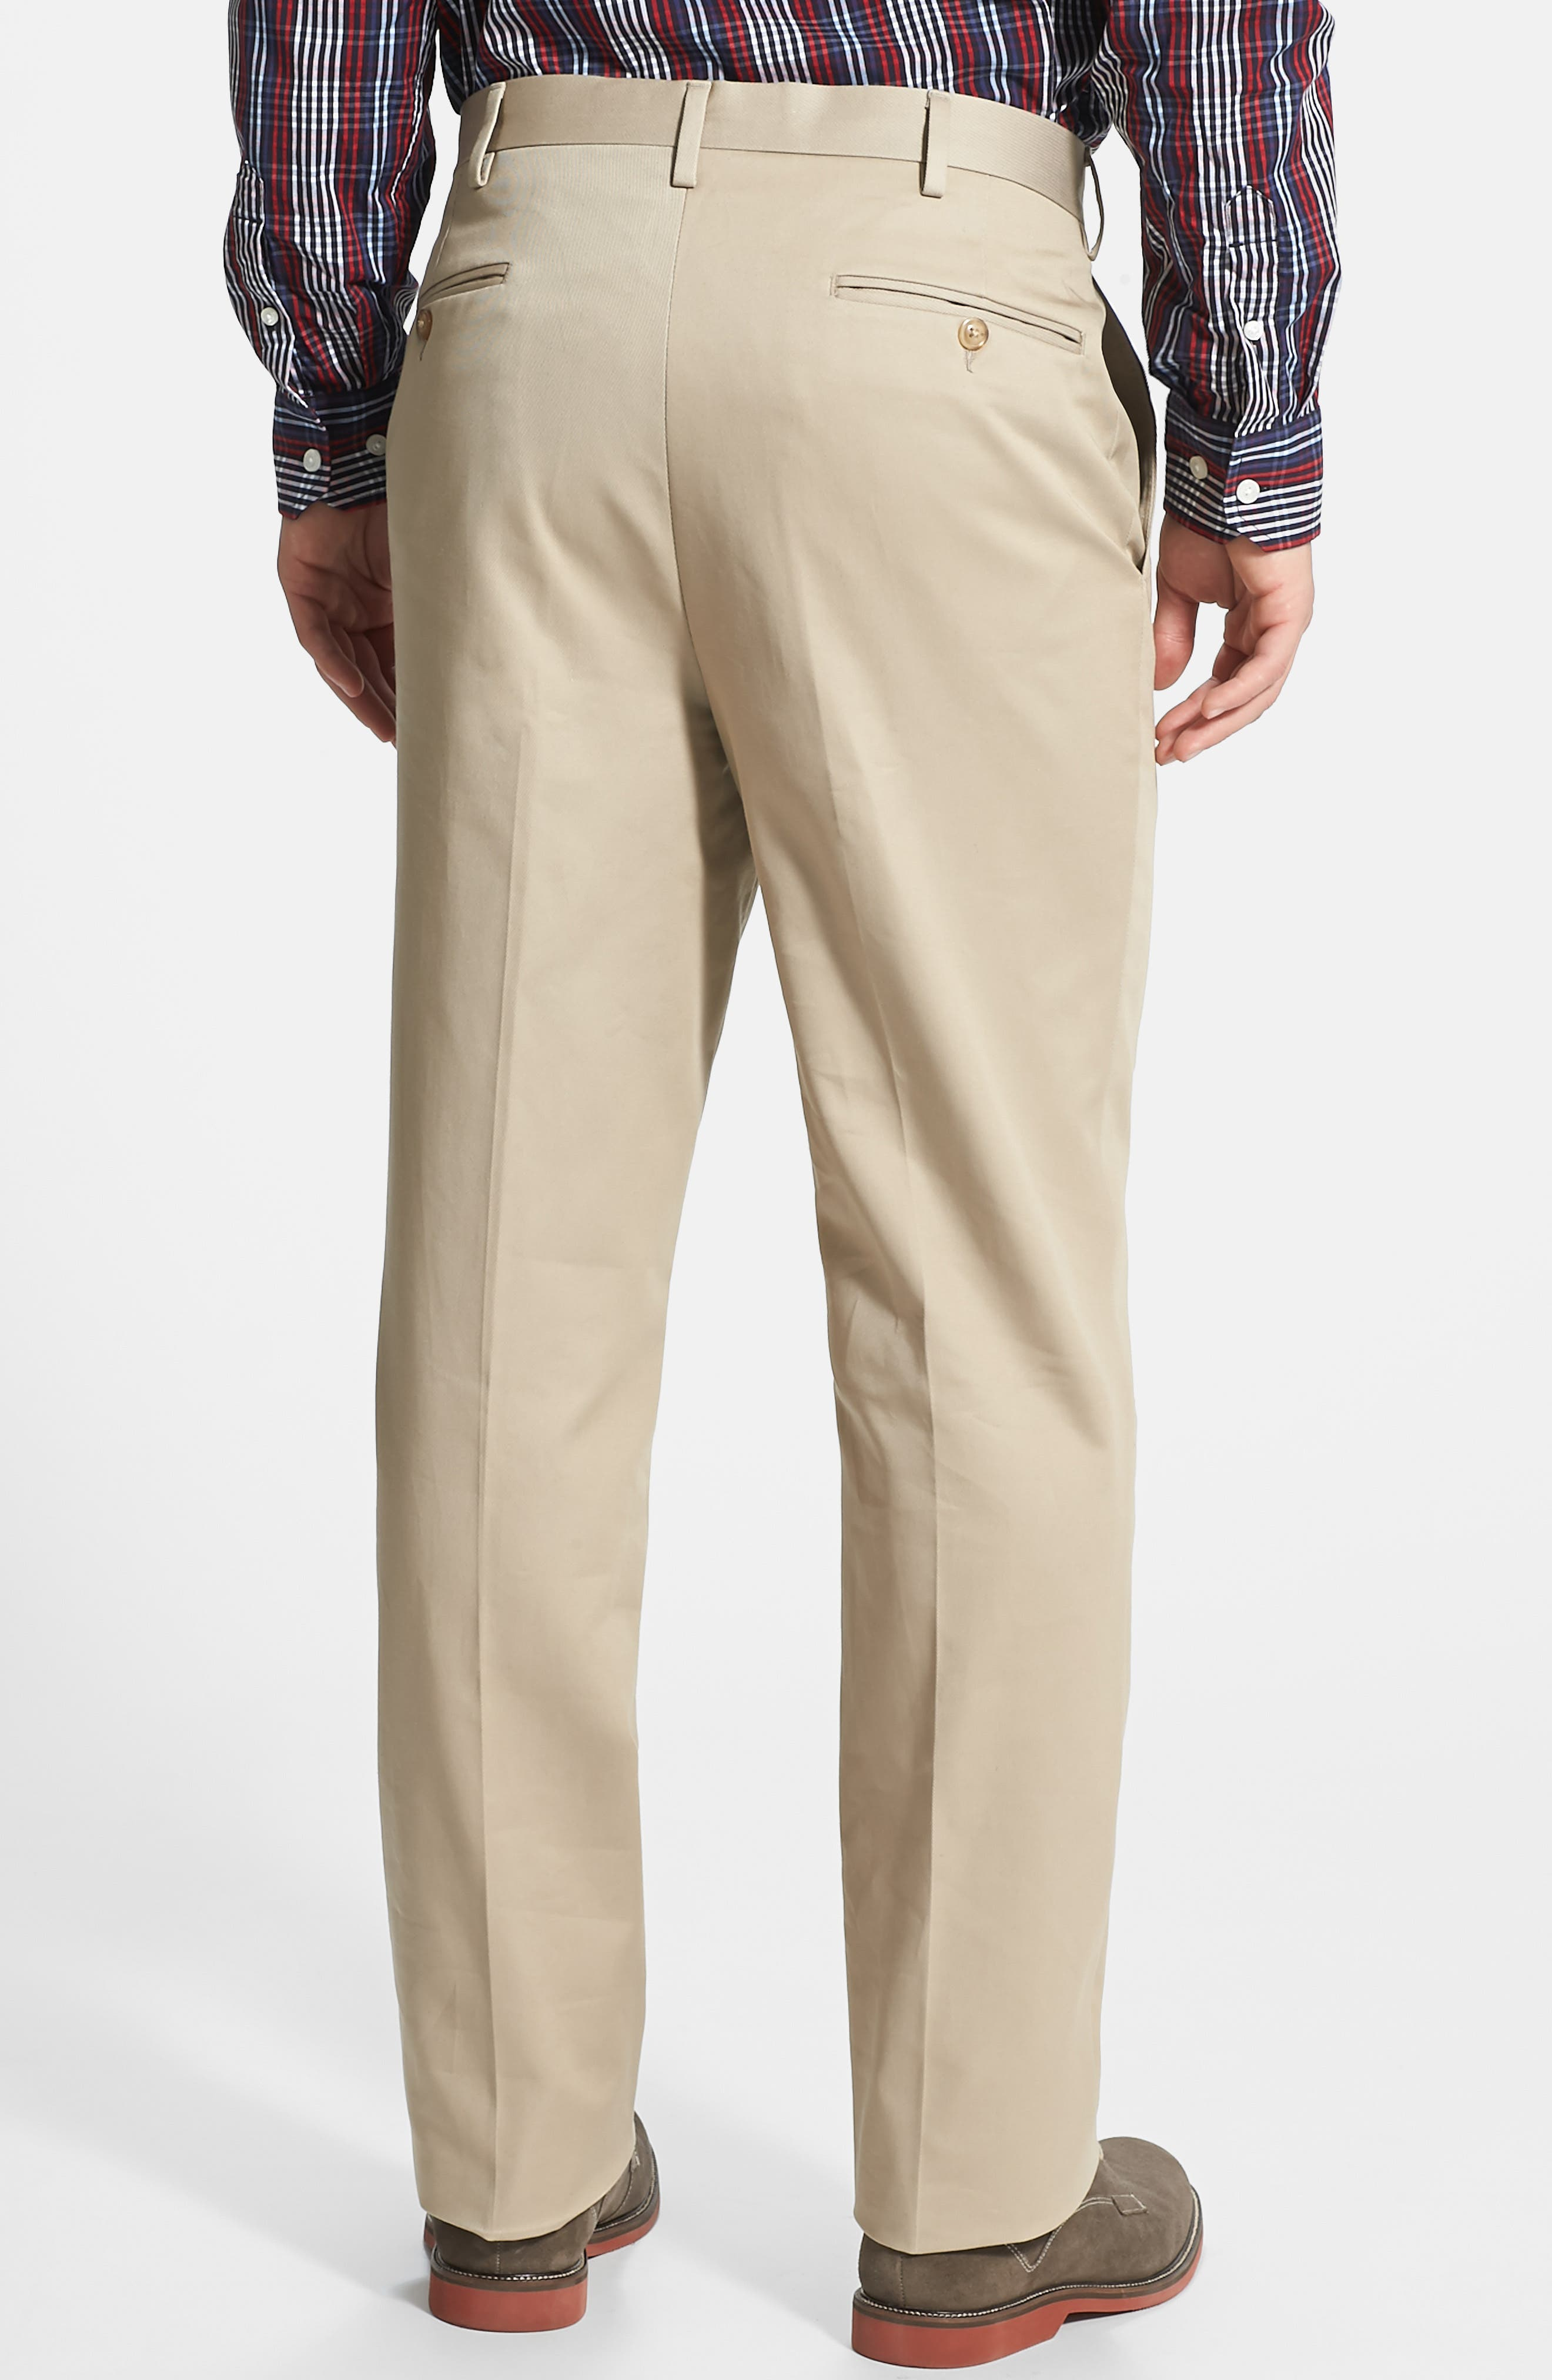 Flat Front Wrinkle Resistant Cotton Trousers,                             Alternate thumbnail 2, color,                             KHAKI